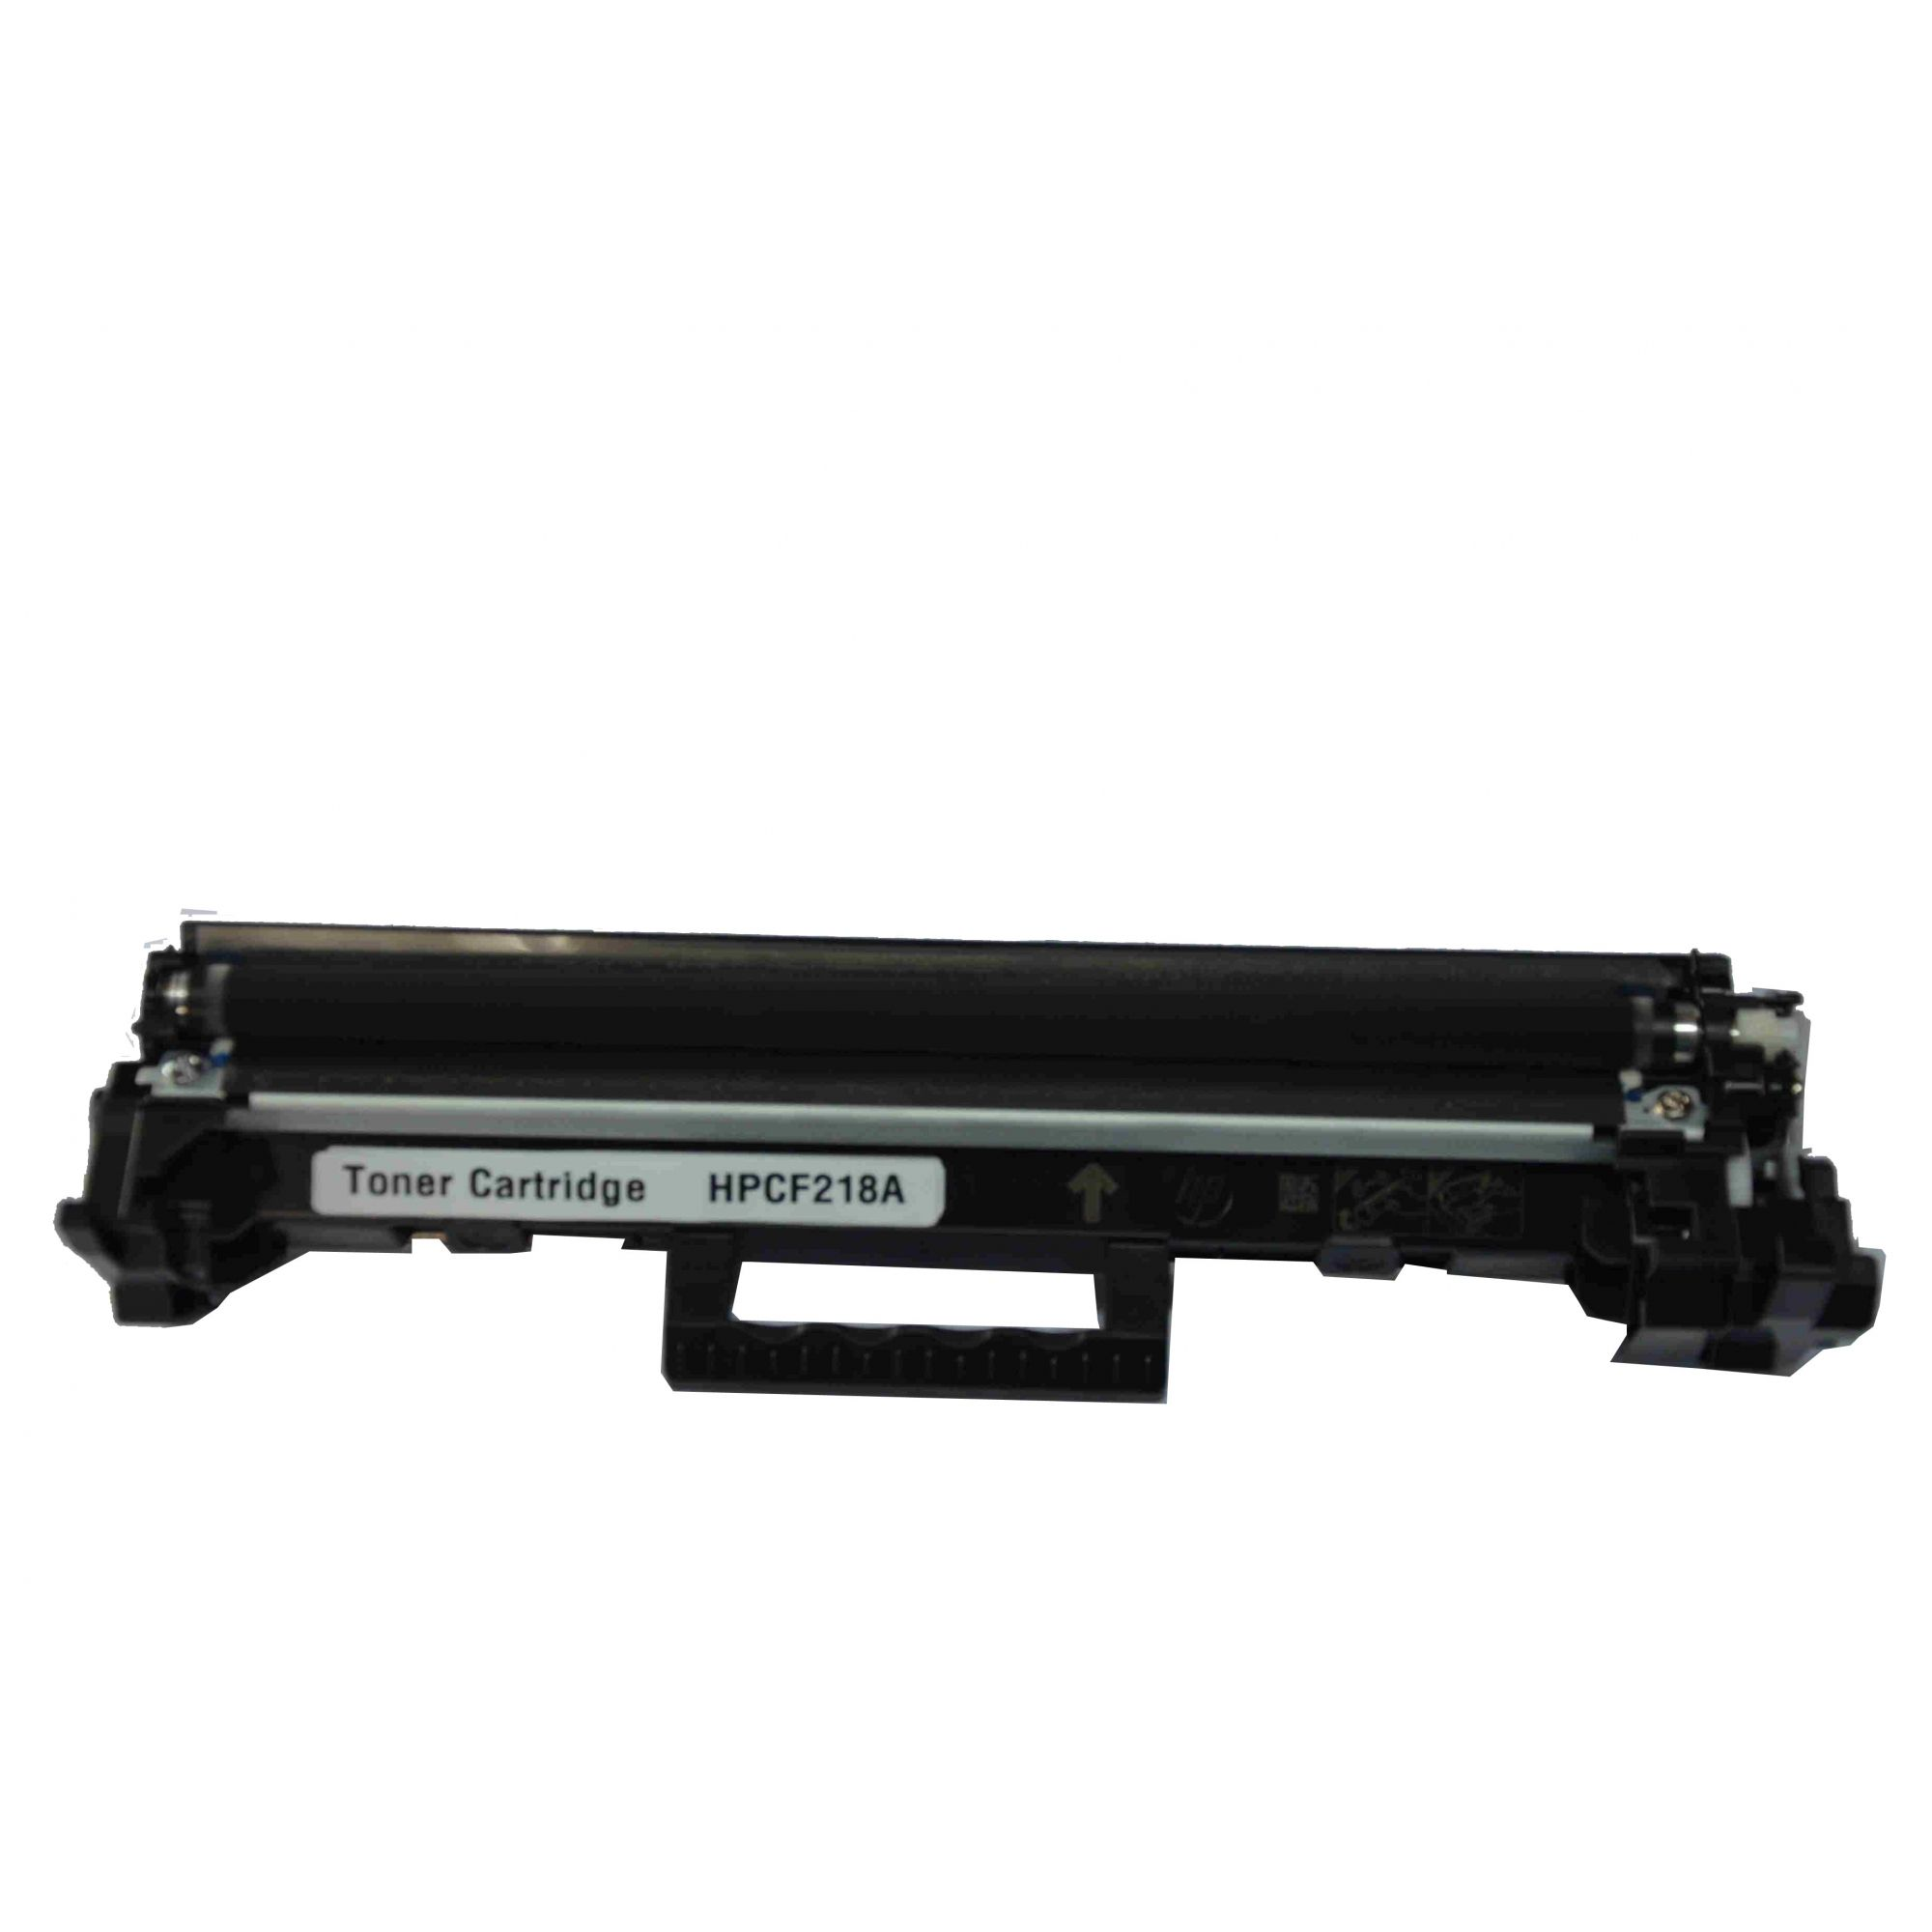 Toner HP CF 218A 18A (SEM CHIP)  CF218 / HP218 / HP18  M132NW M132FN M132FW M132A M132SNW M132FP COMPATIVEL